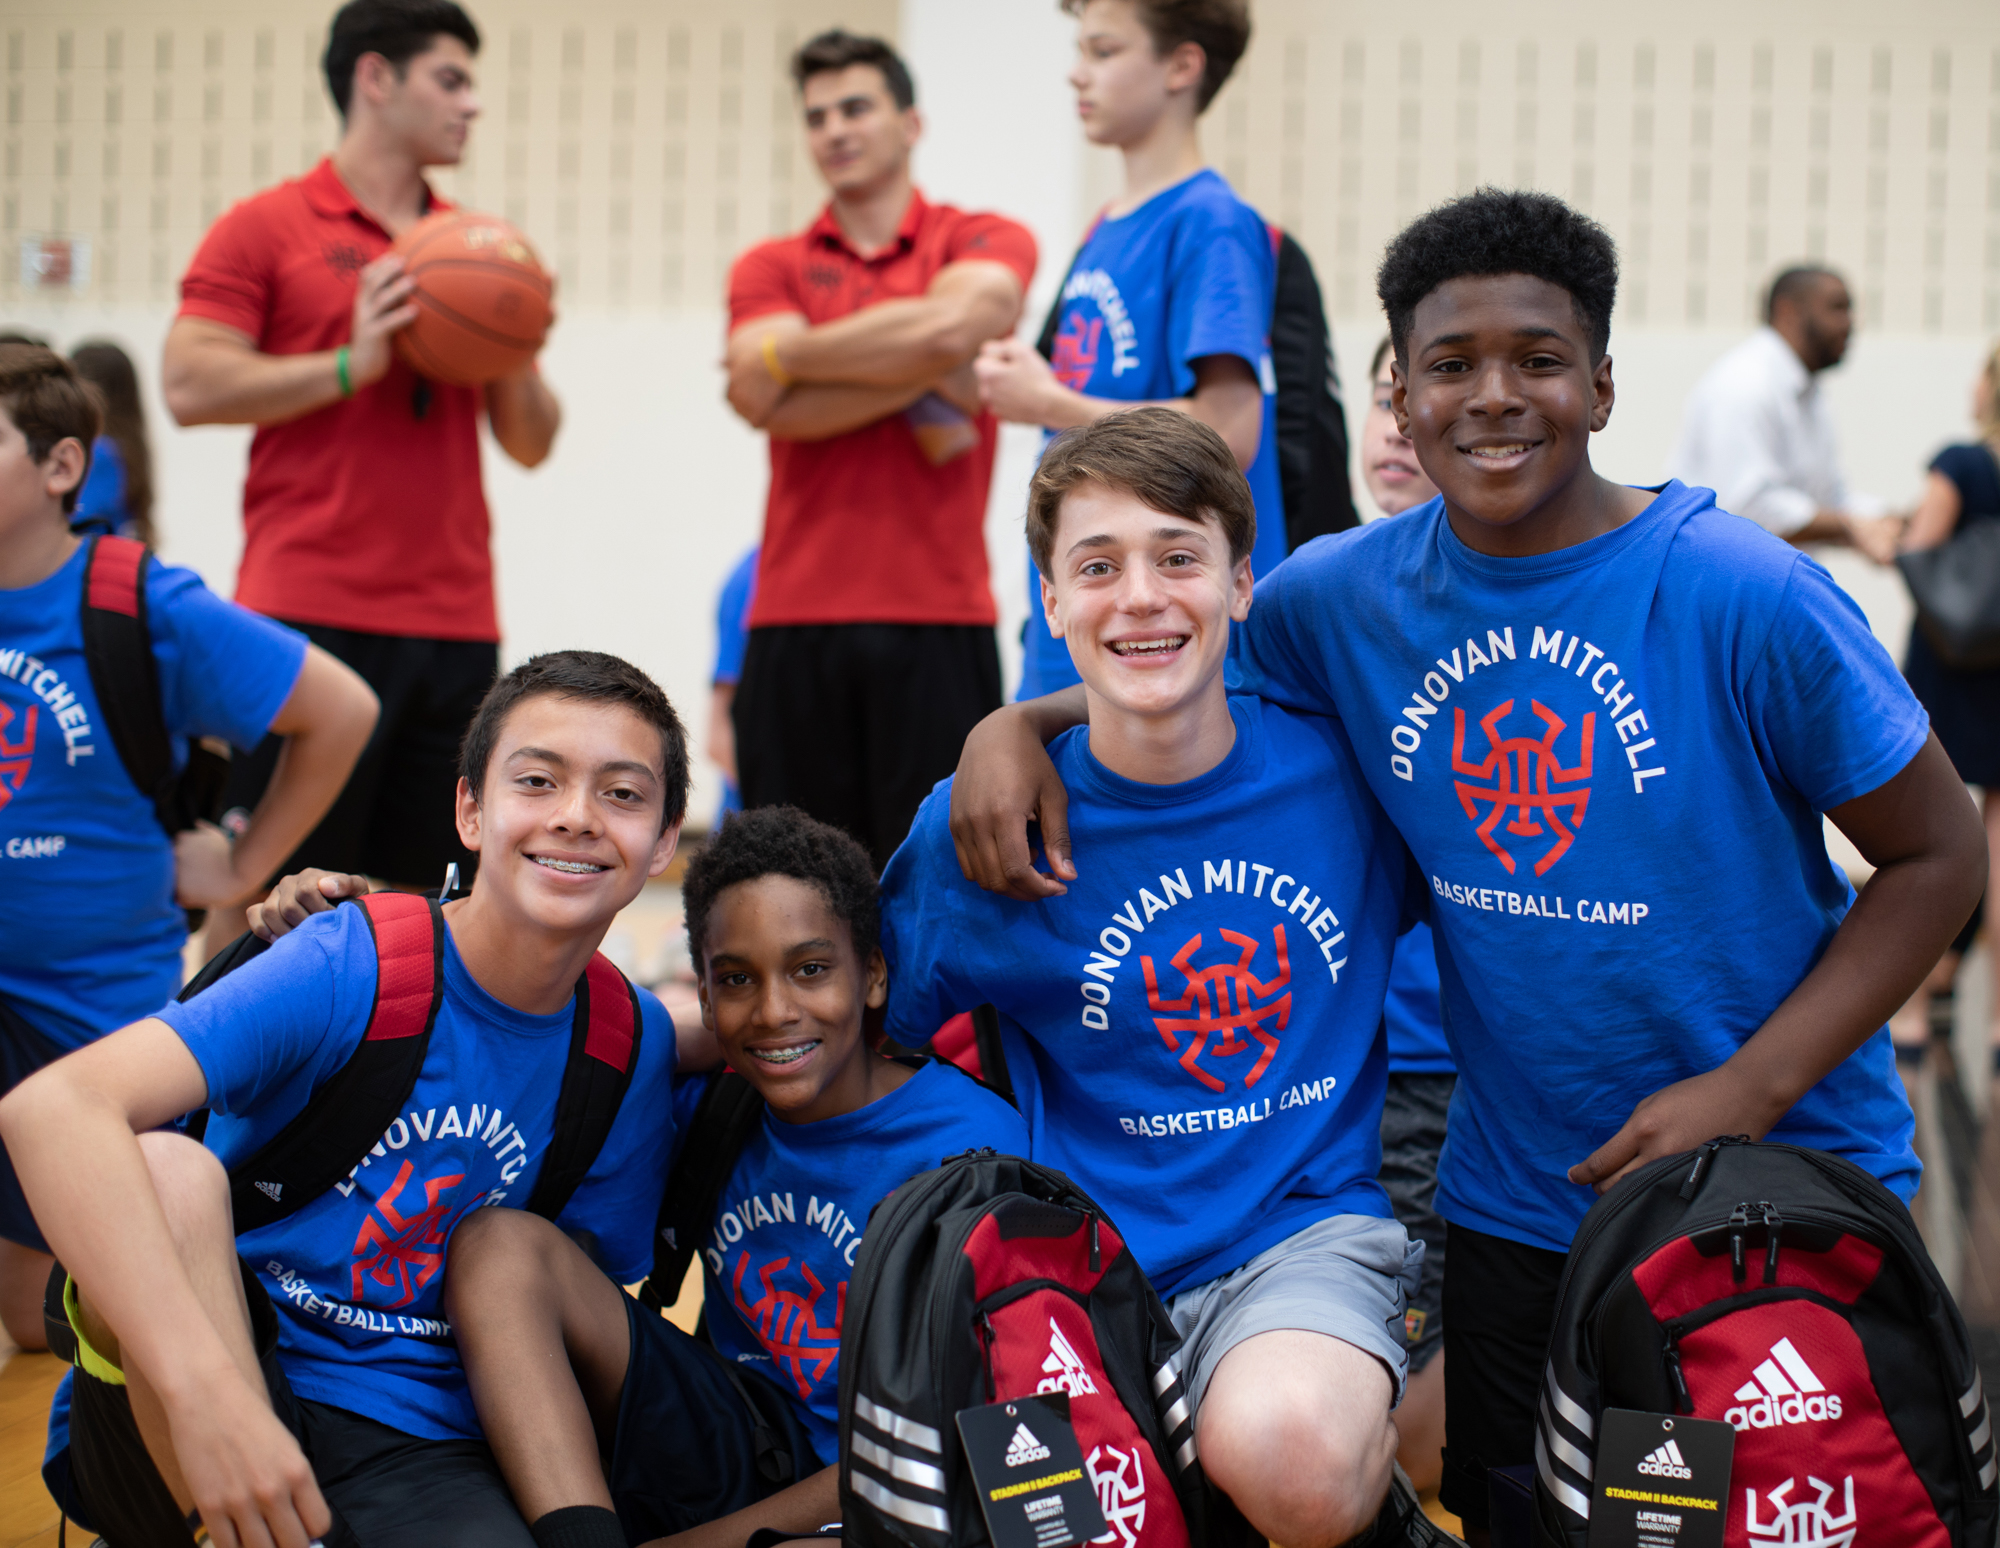 190602-donovan-mitchell-basketball-camp-grades5-9-WH-1861 copy.jpg